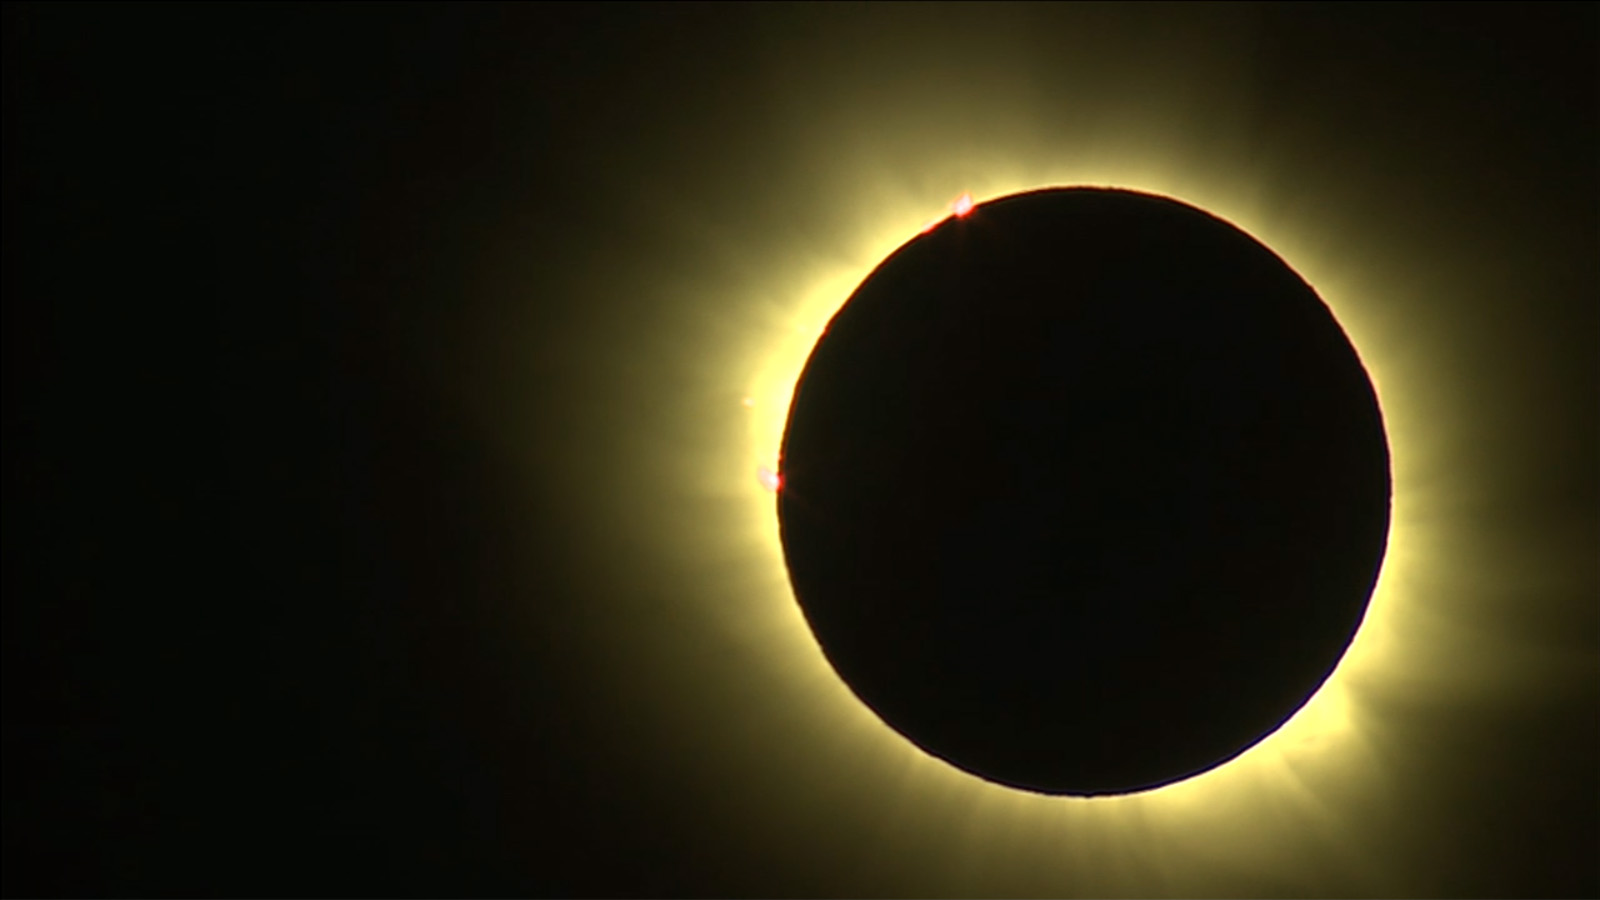 Total Solar Eclipse of 2015 at Totality